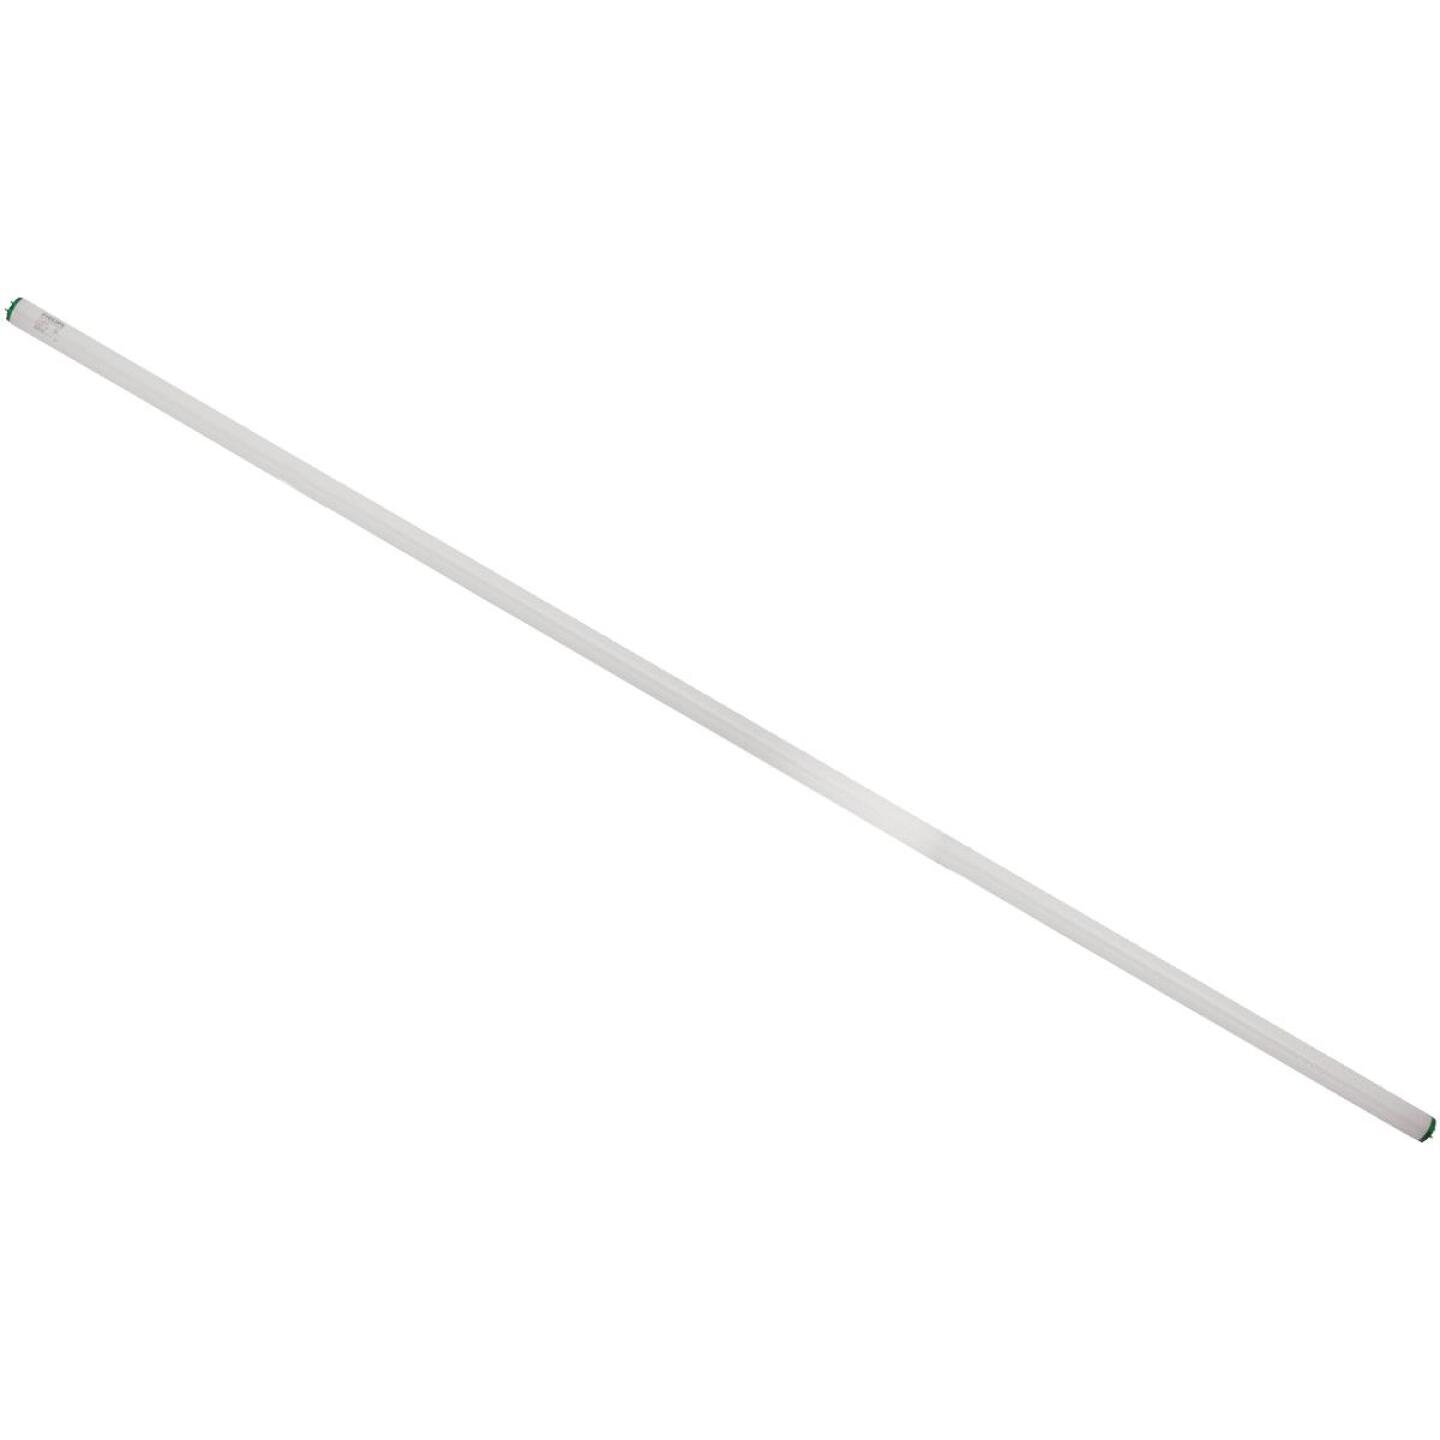 Philips 75W 96 In. Cool White T12 Single Pin Fluorescent Tube Light Bulb (15-Pack) Image 4